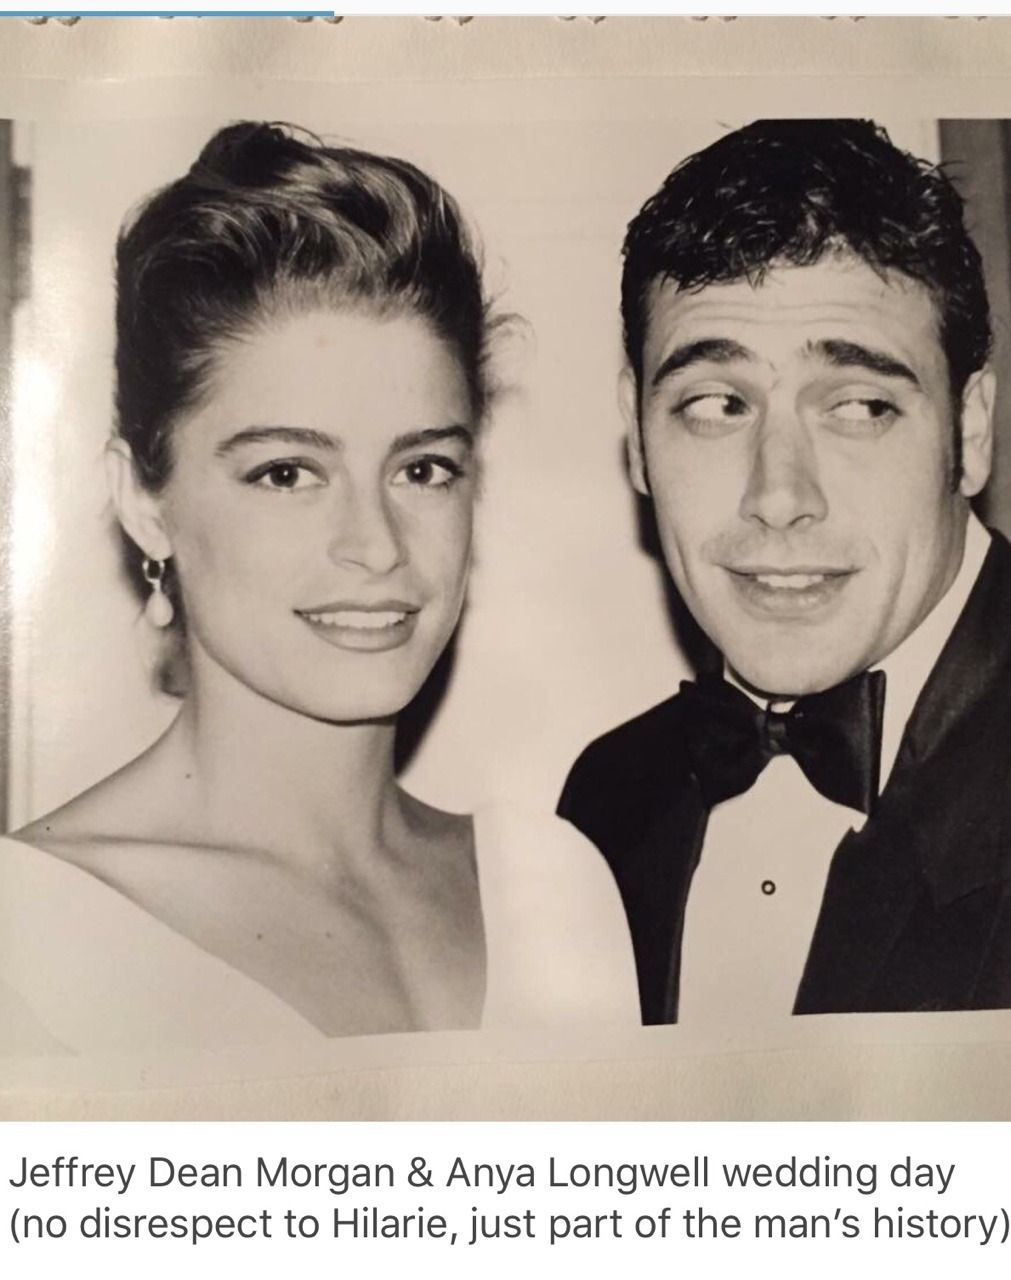 Anya Longwell And Jeffrey Dean Morgan Married In 1998